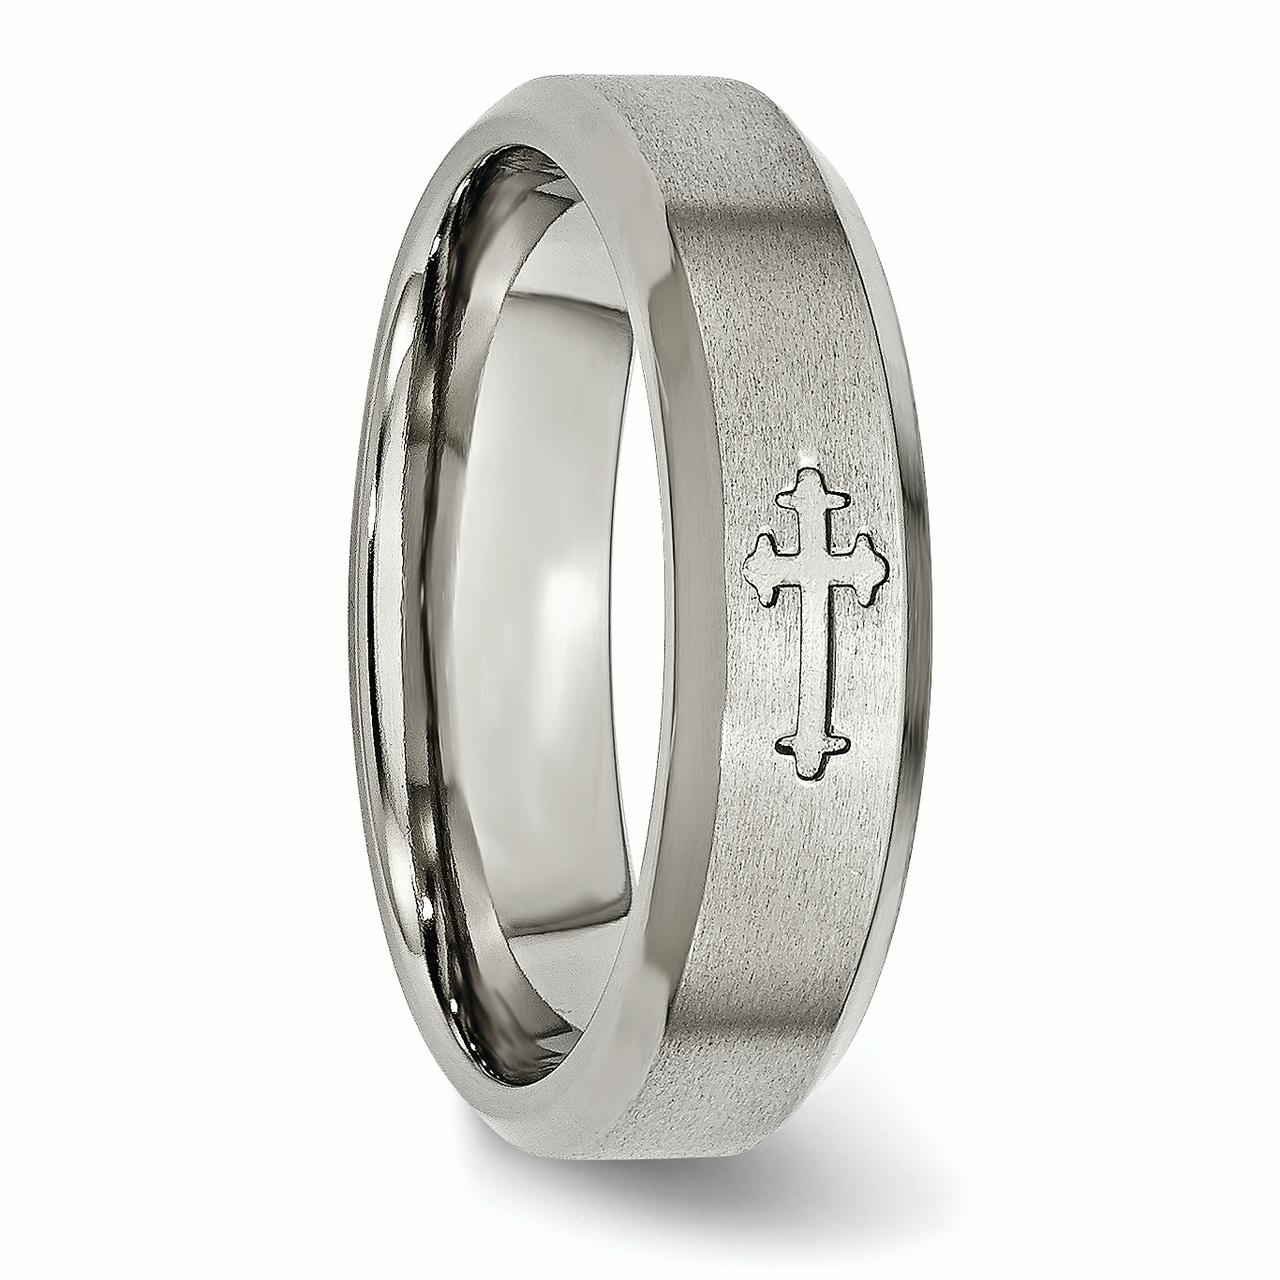 Titanium Cross Religious Design 6mm Beveled Edge Wedding Ring Band Size 11.00 Designed Fashion Jewelry Gifts For Women For Her - image 5 of 7